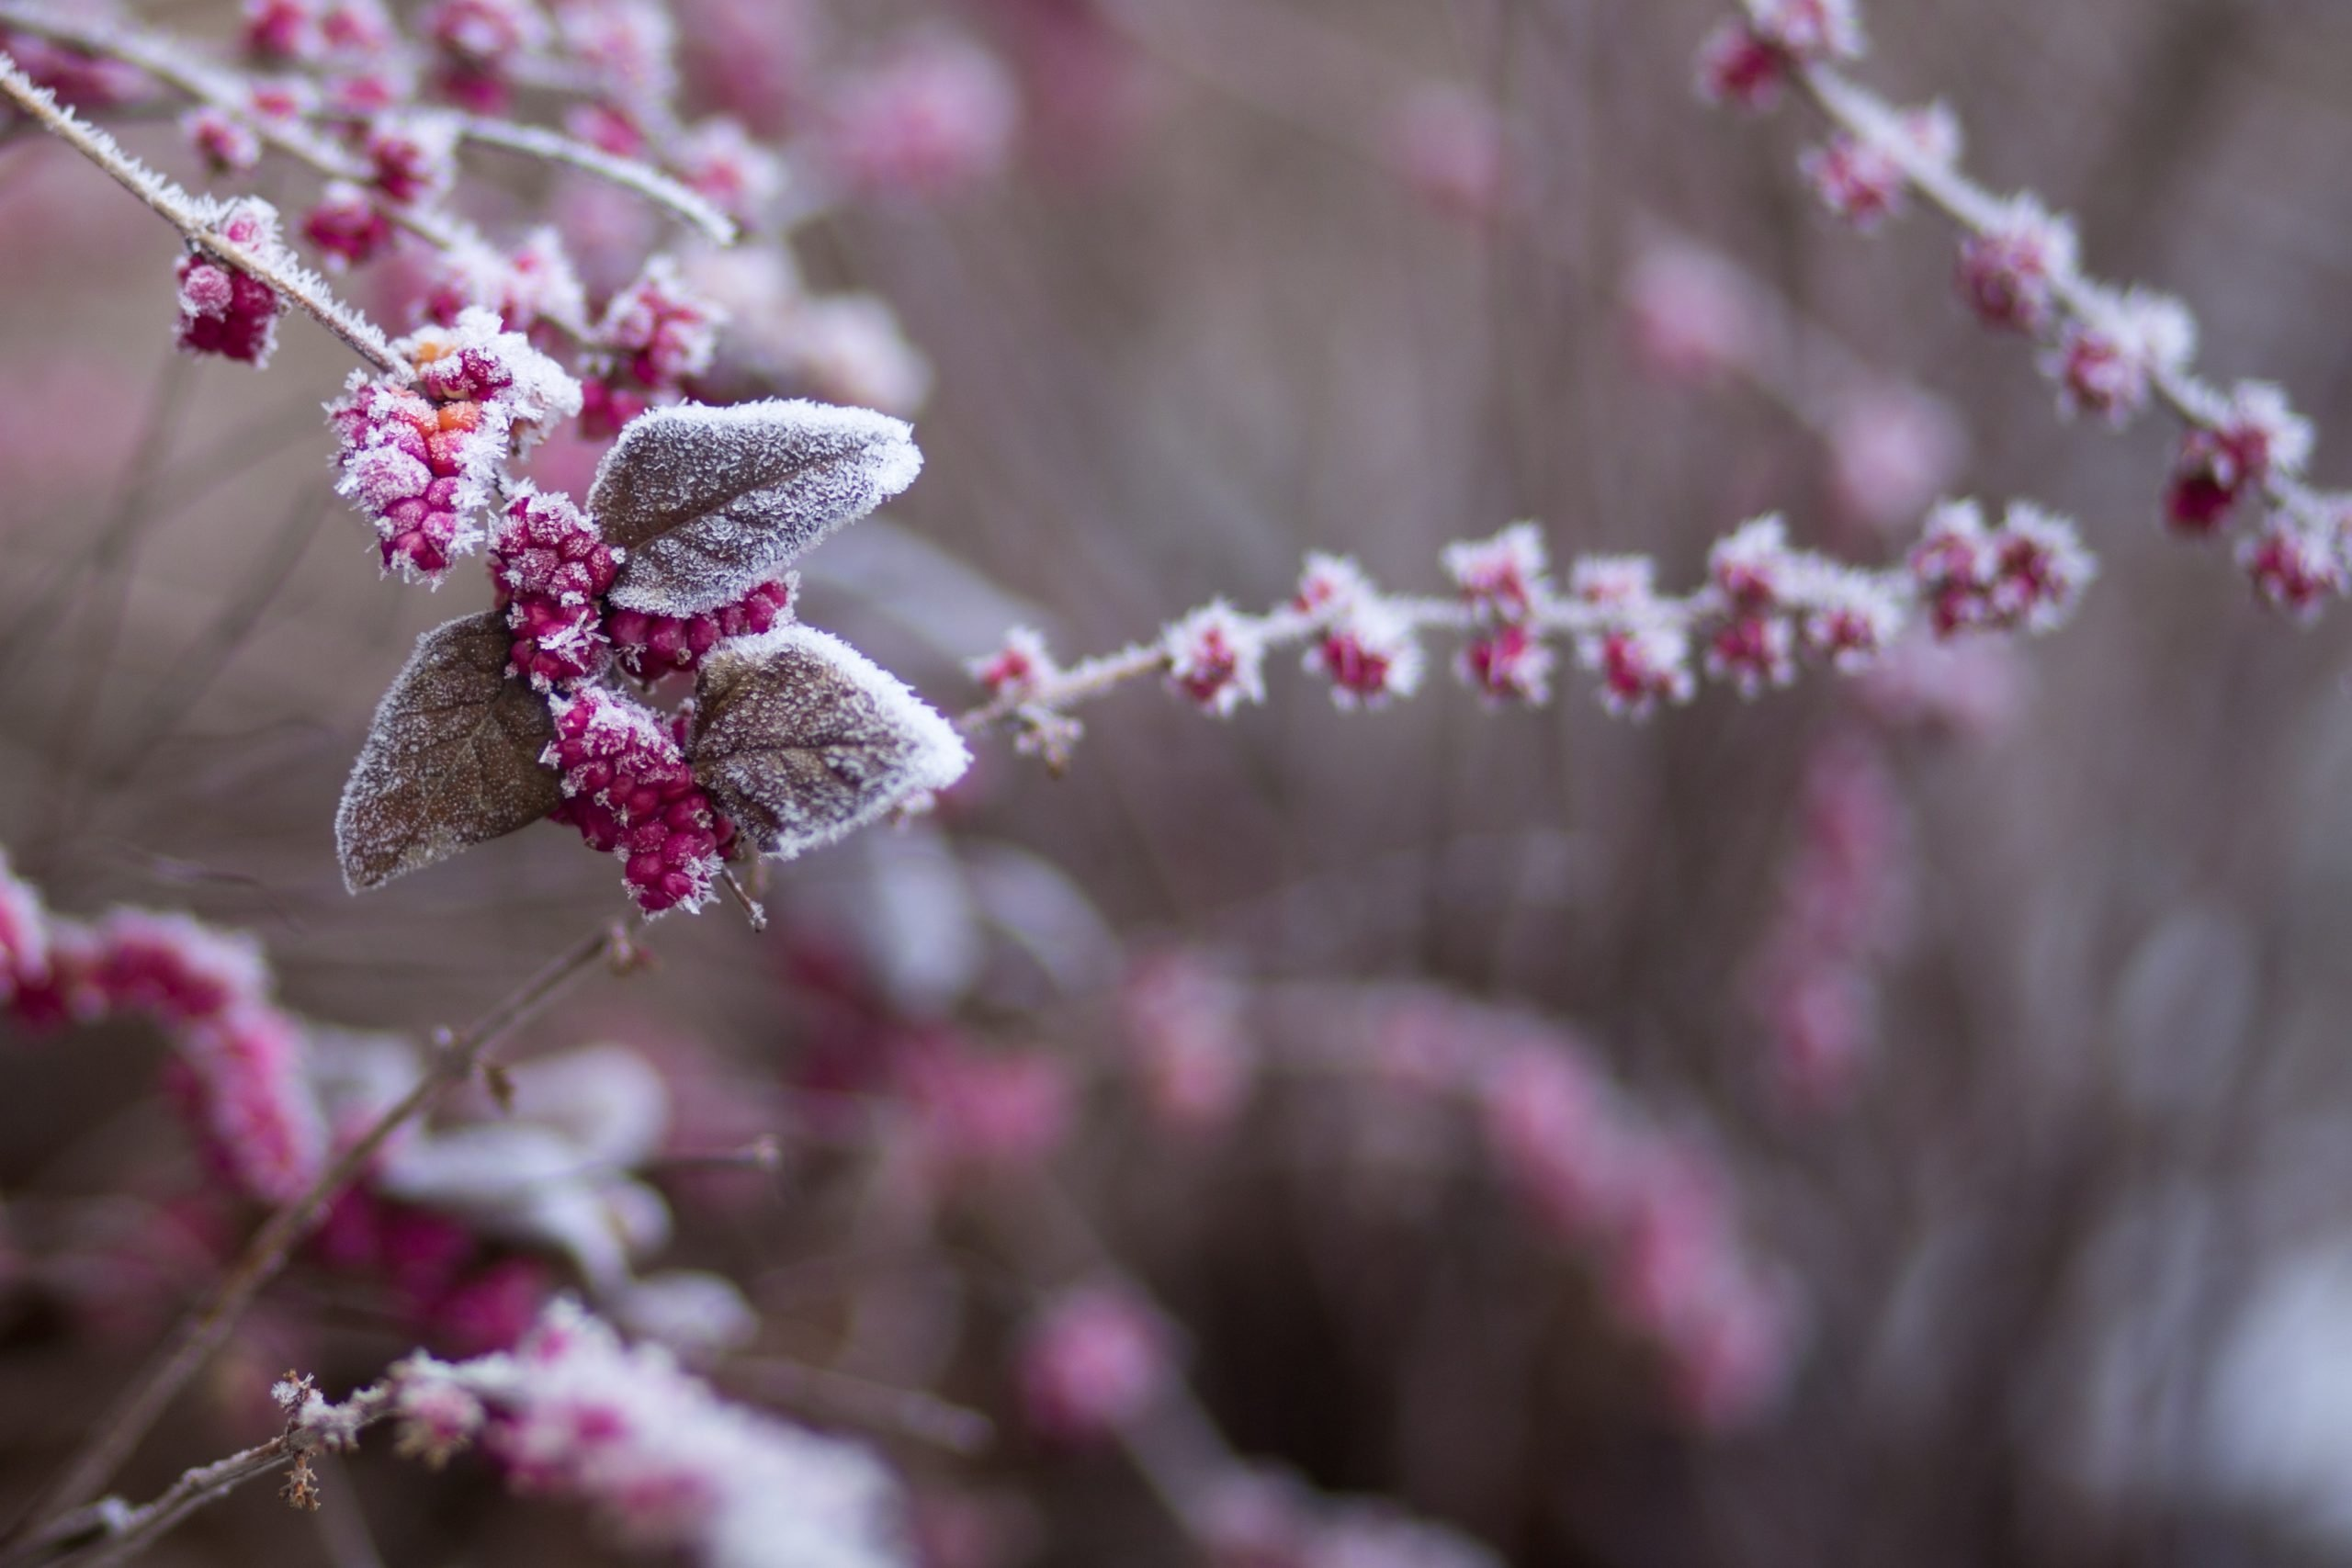 Frost on plant